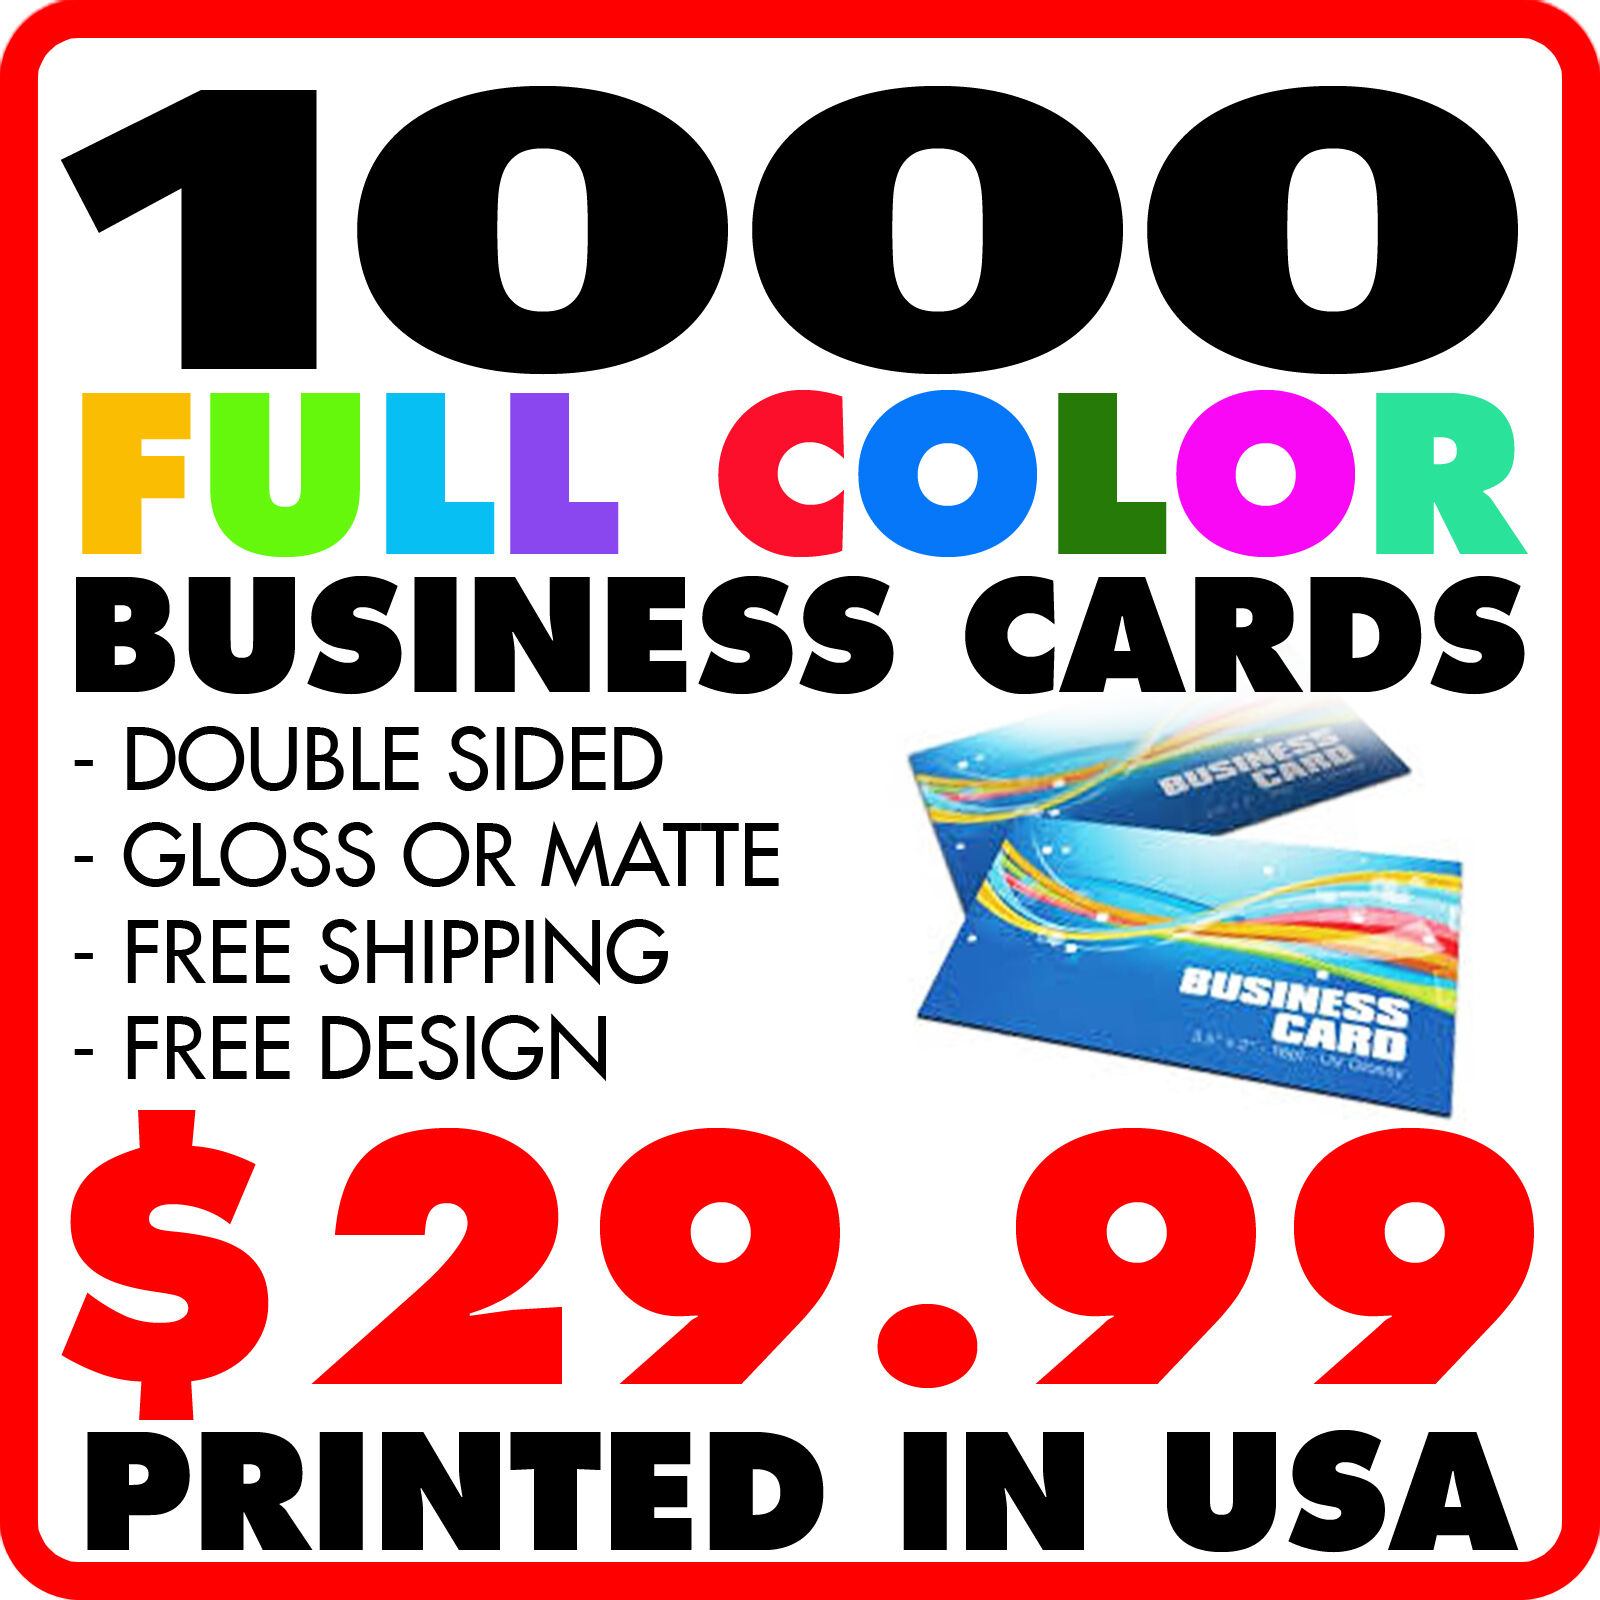 1000 Custom Full Color Business Cards Free Design Shipping 1 Of 1free